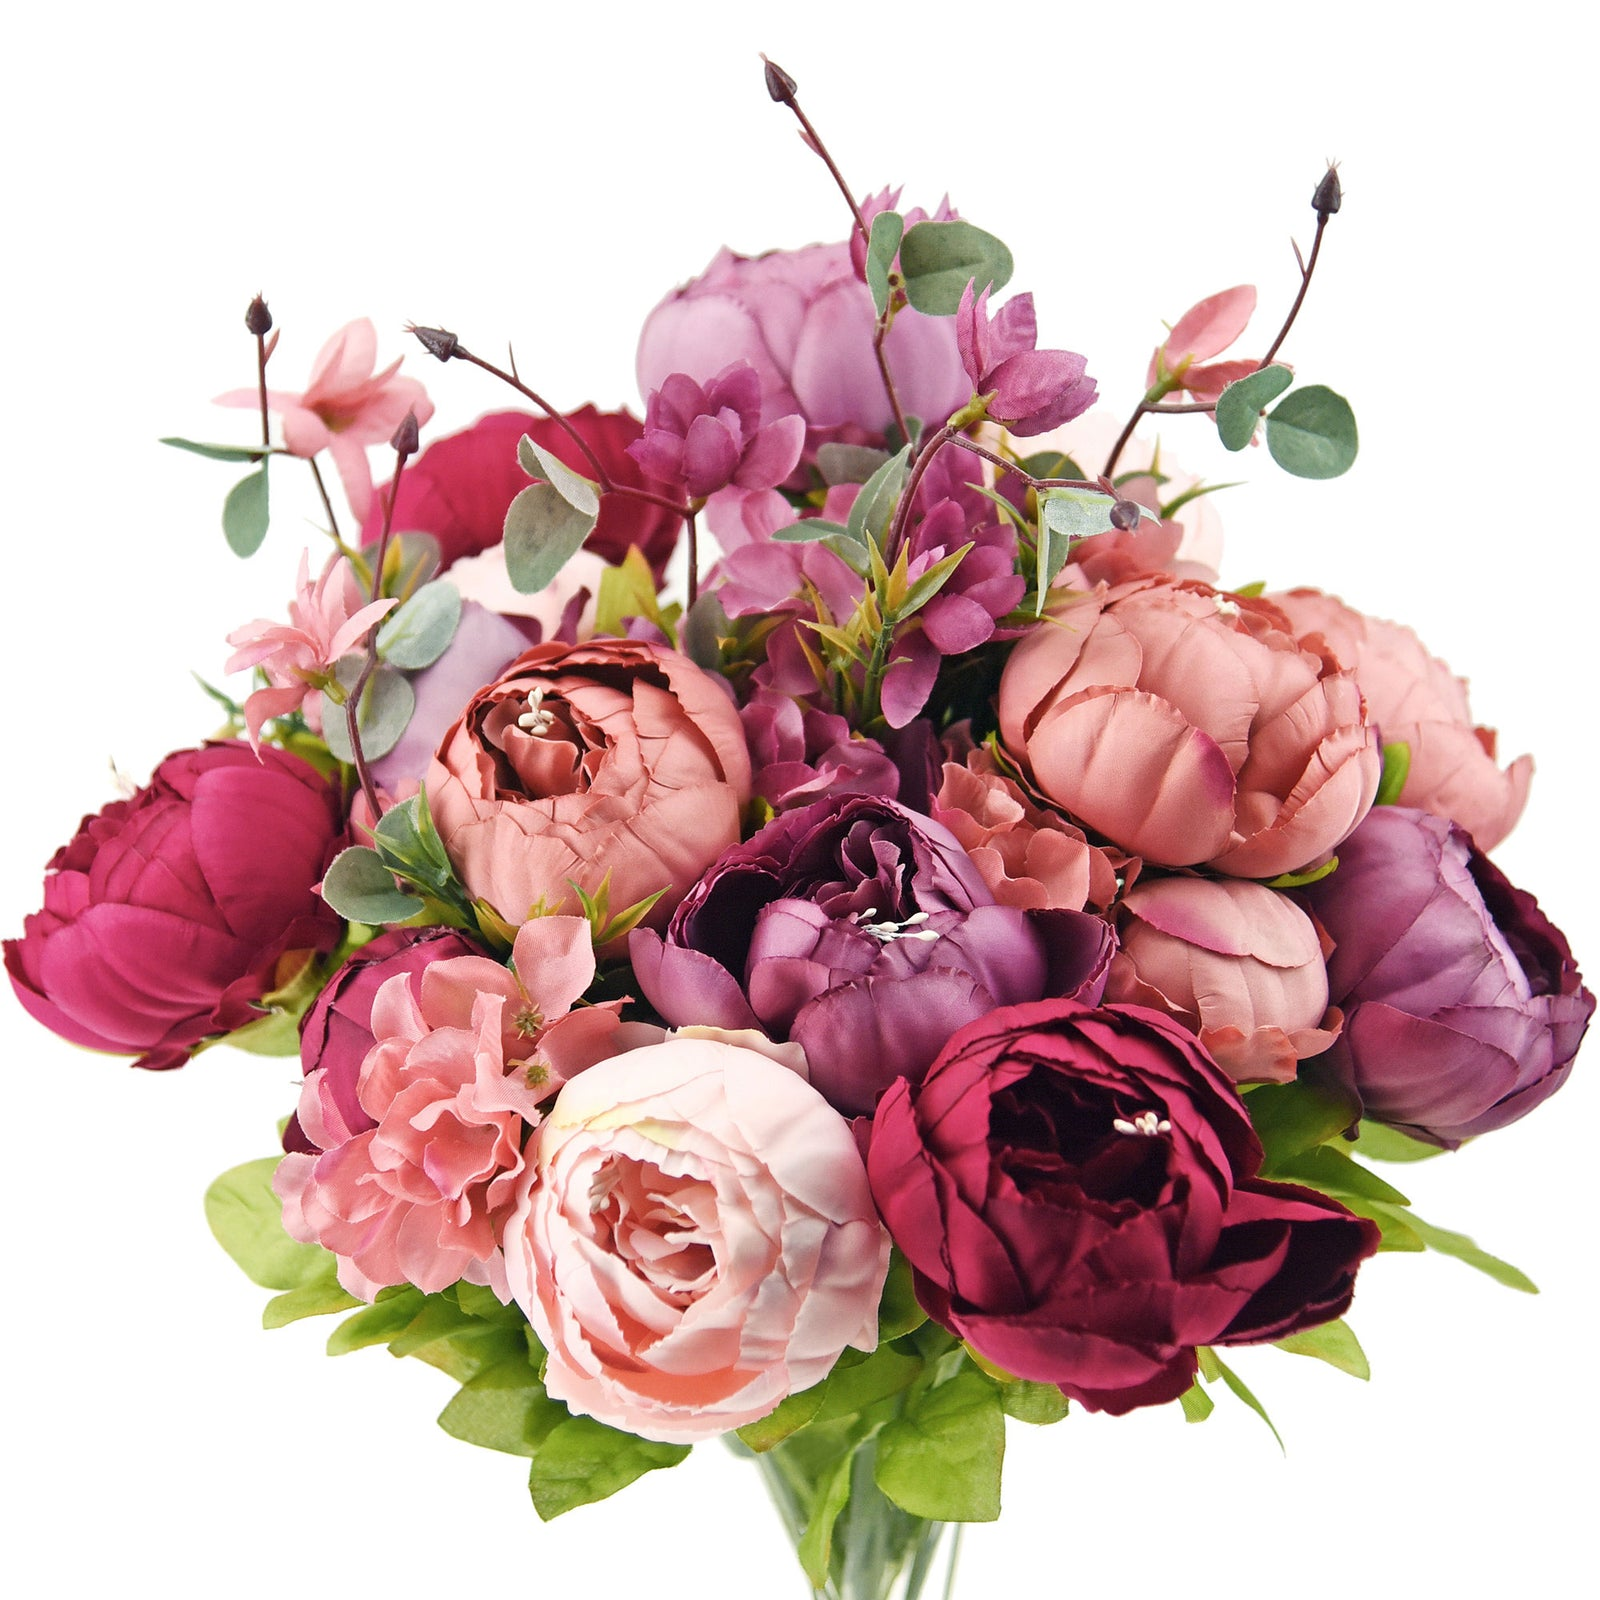 FiveSeasonStuff 2 Stems (Cheerful Medley) Silk Peonies Artificial Flower Bouquet